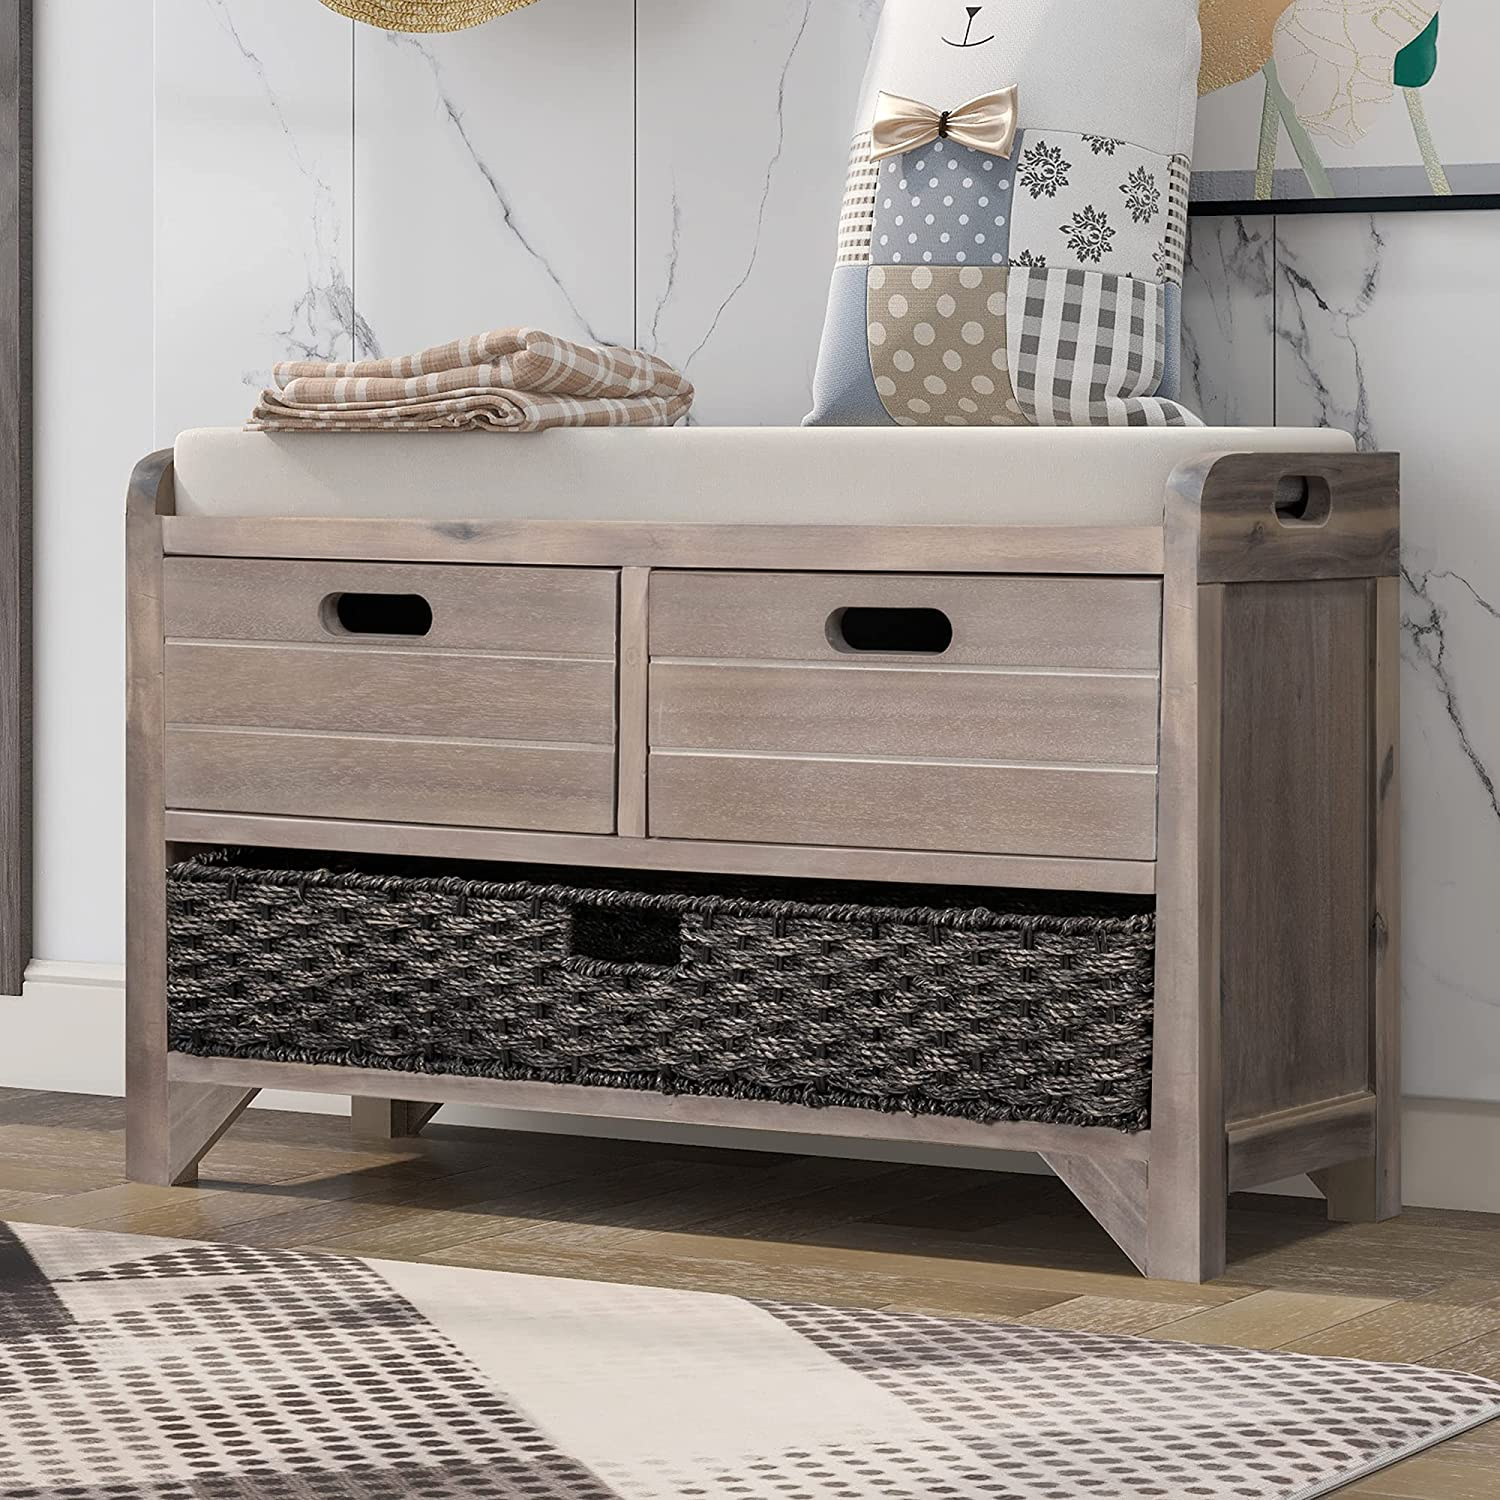 P PURLOVE Wood Storage Bench Homes quality assurance Collection Beauty products with 2 B Removable